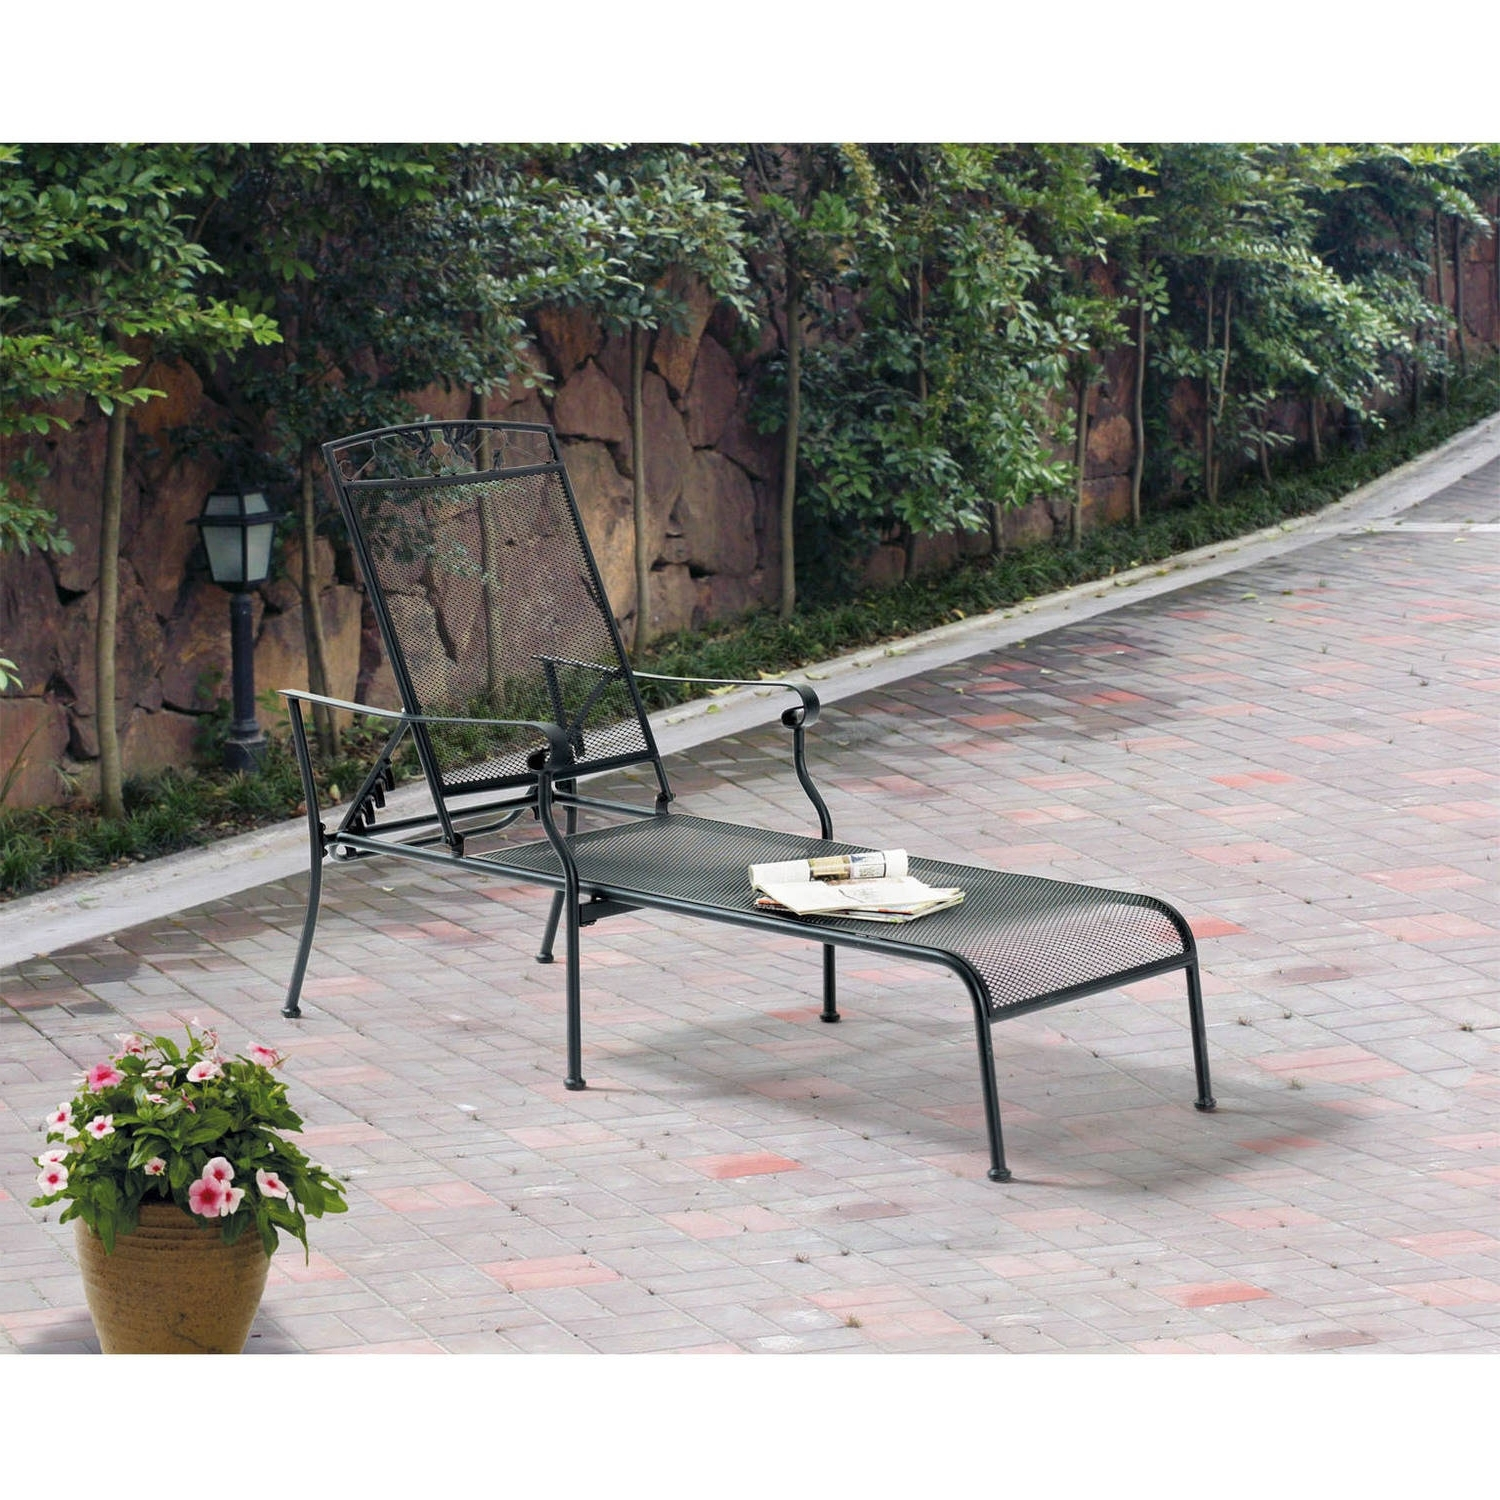 Mainstays Jefferson Wrought Iron Chaise Lounge, Black – Walmart For Well Known Wrought Iron Outdoor Chaise Lounge Chairs (View 12 of 15)